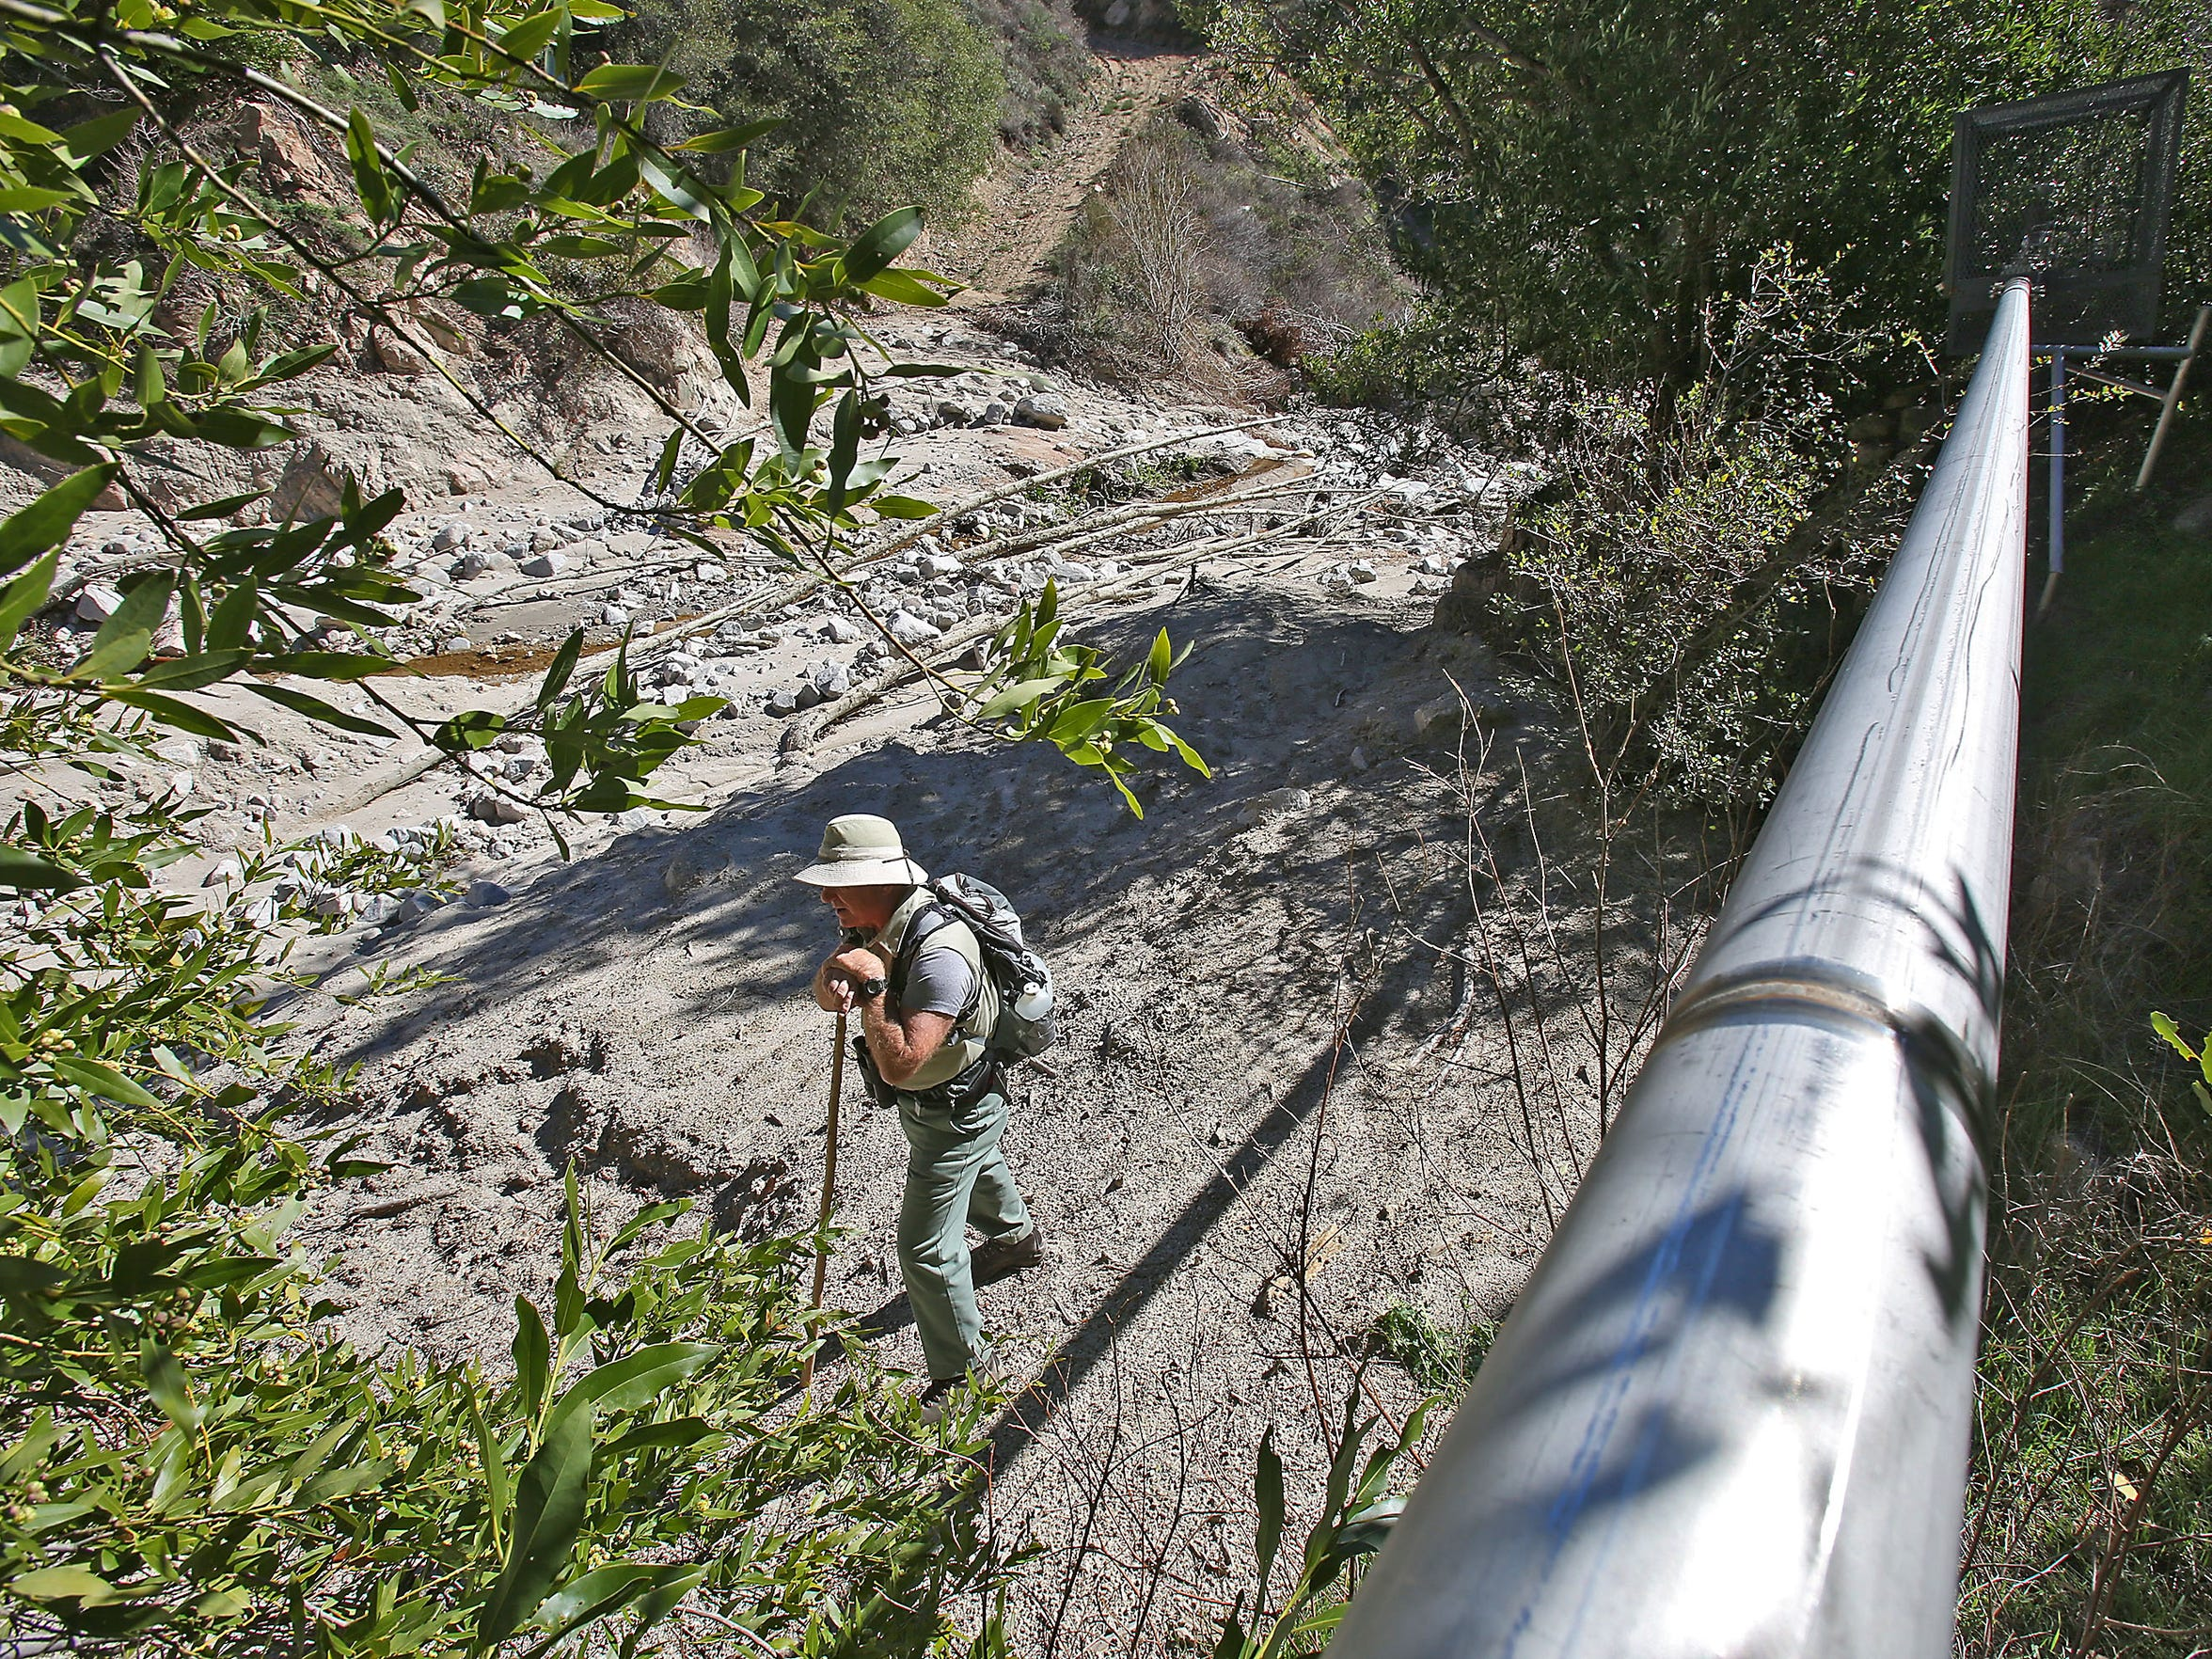 Retired Forest Service employee Gary Earney pauses with his walking stick after hiking to Strawberry Creek, where a pipe carries spring water across the national forest to be bottled.